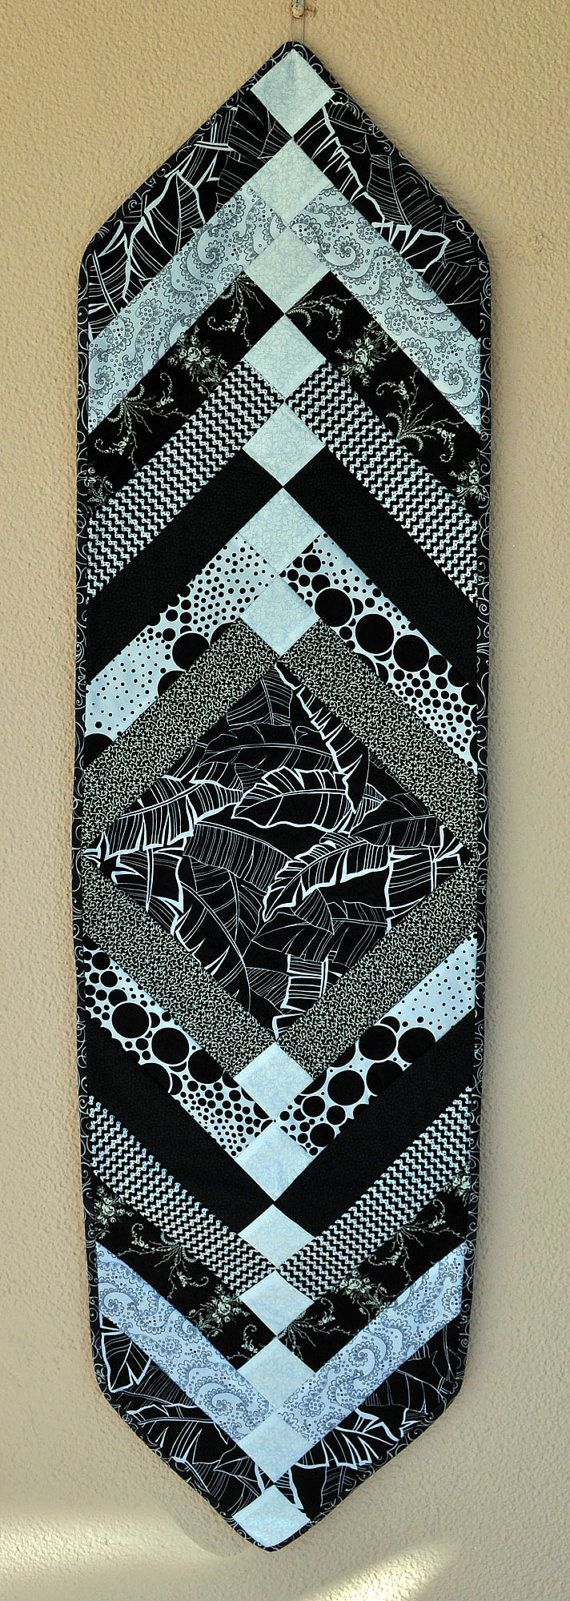 This modern quilted table runner in all black and white 100% cotton fabrics will go with everything! It is braided and strip-pieced. I used a